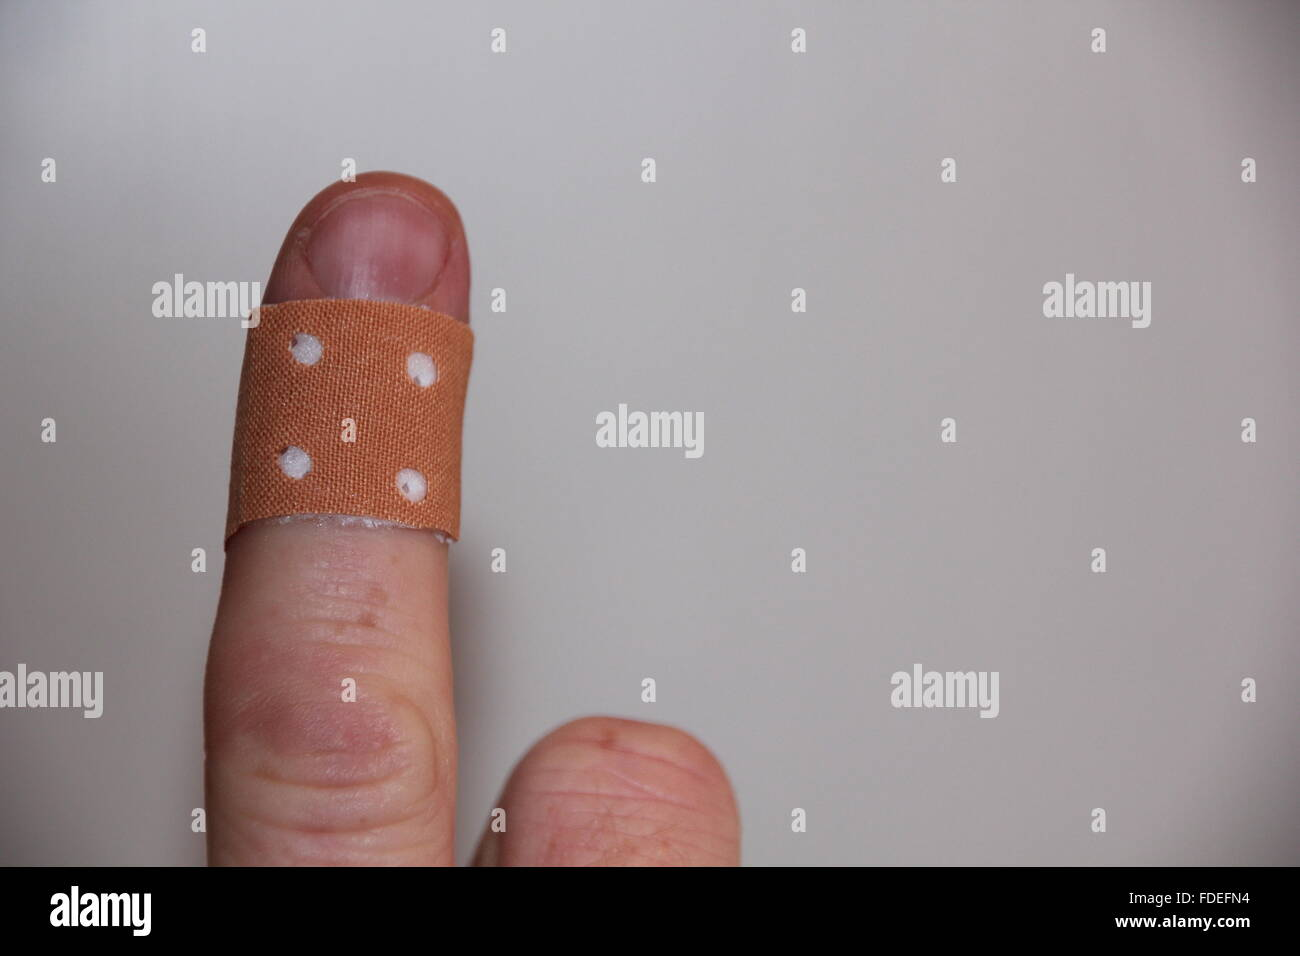 tape around the finger - Stock Image